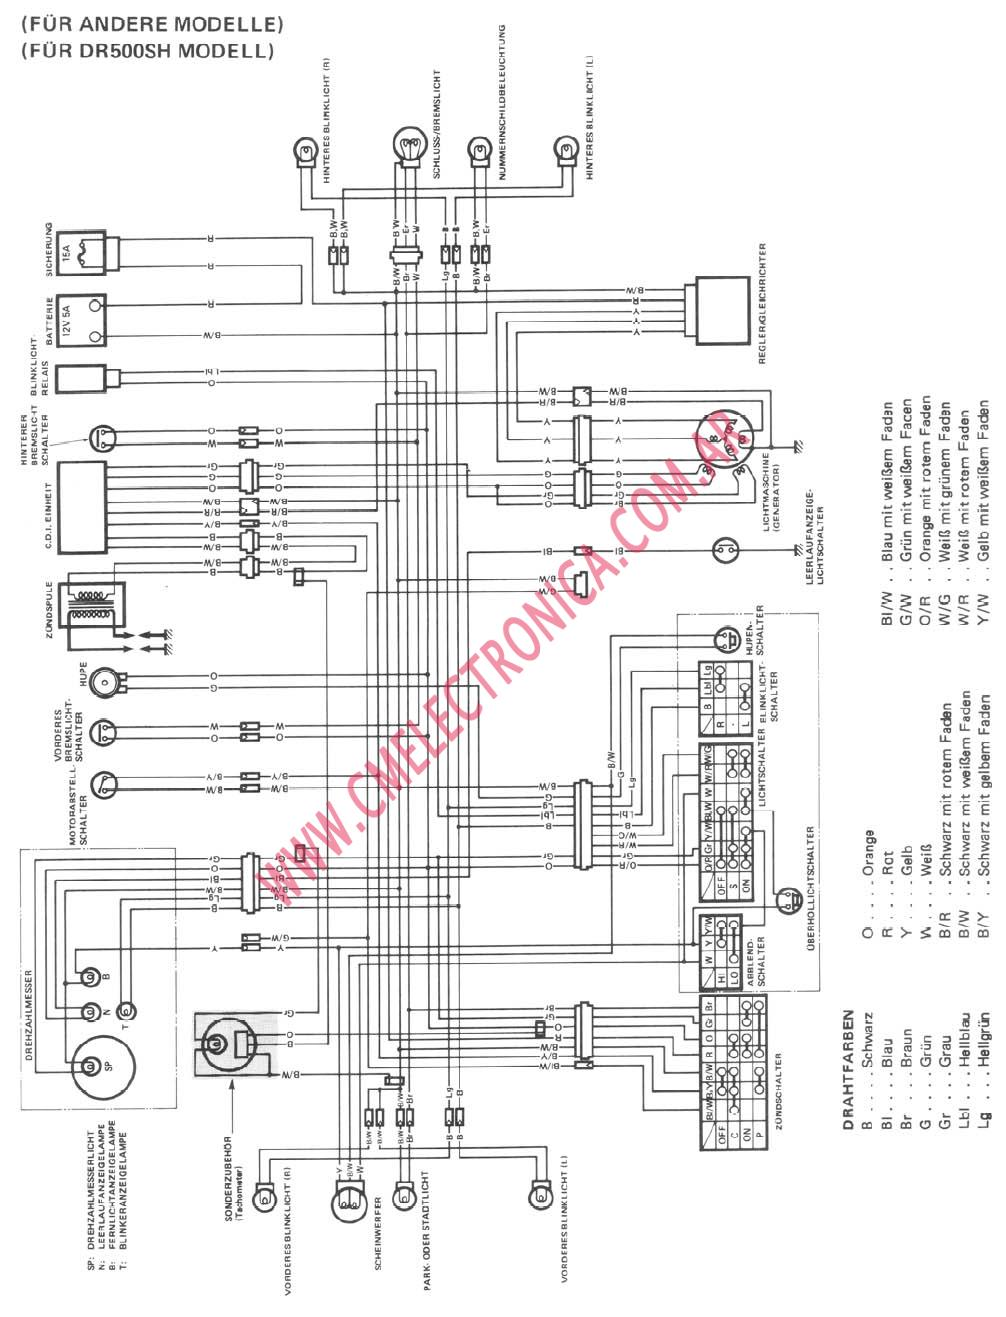 [DIAGRAM] Mercury 50 Elpto Wiring Diagram FULL Version HD